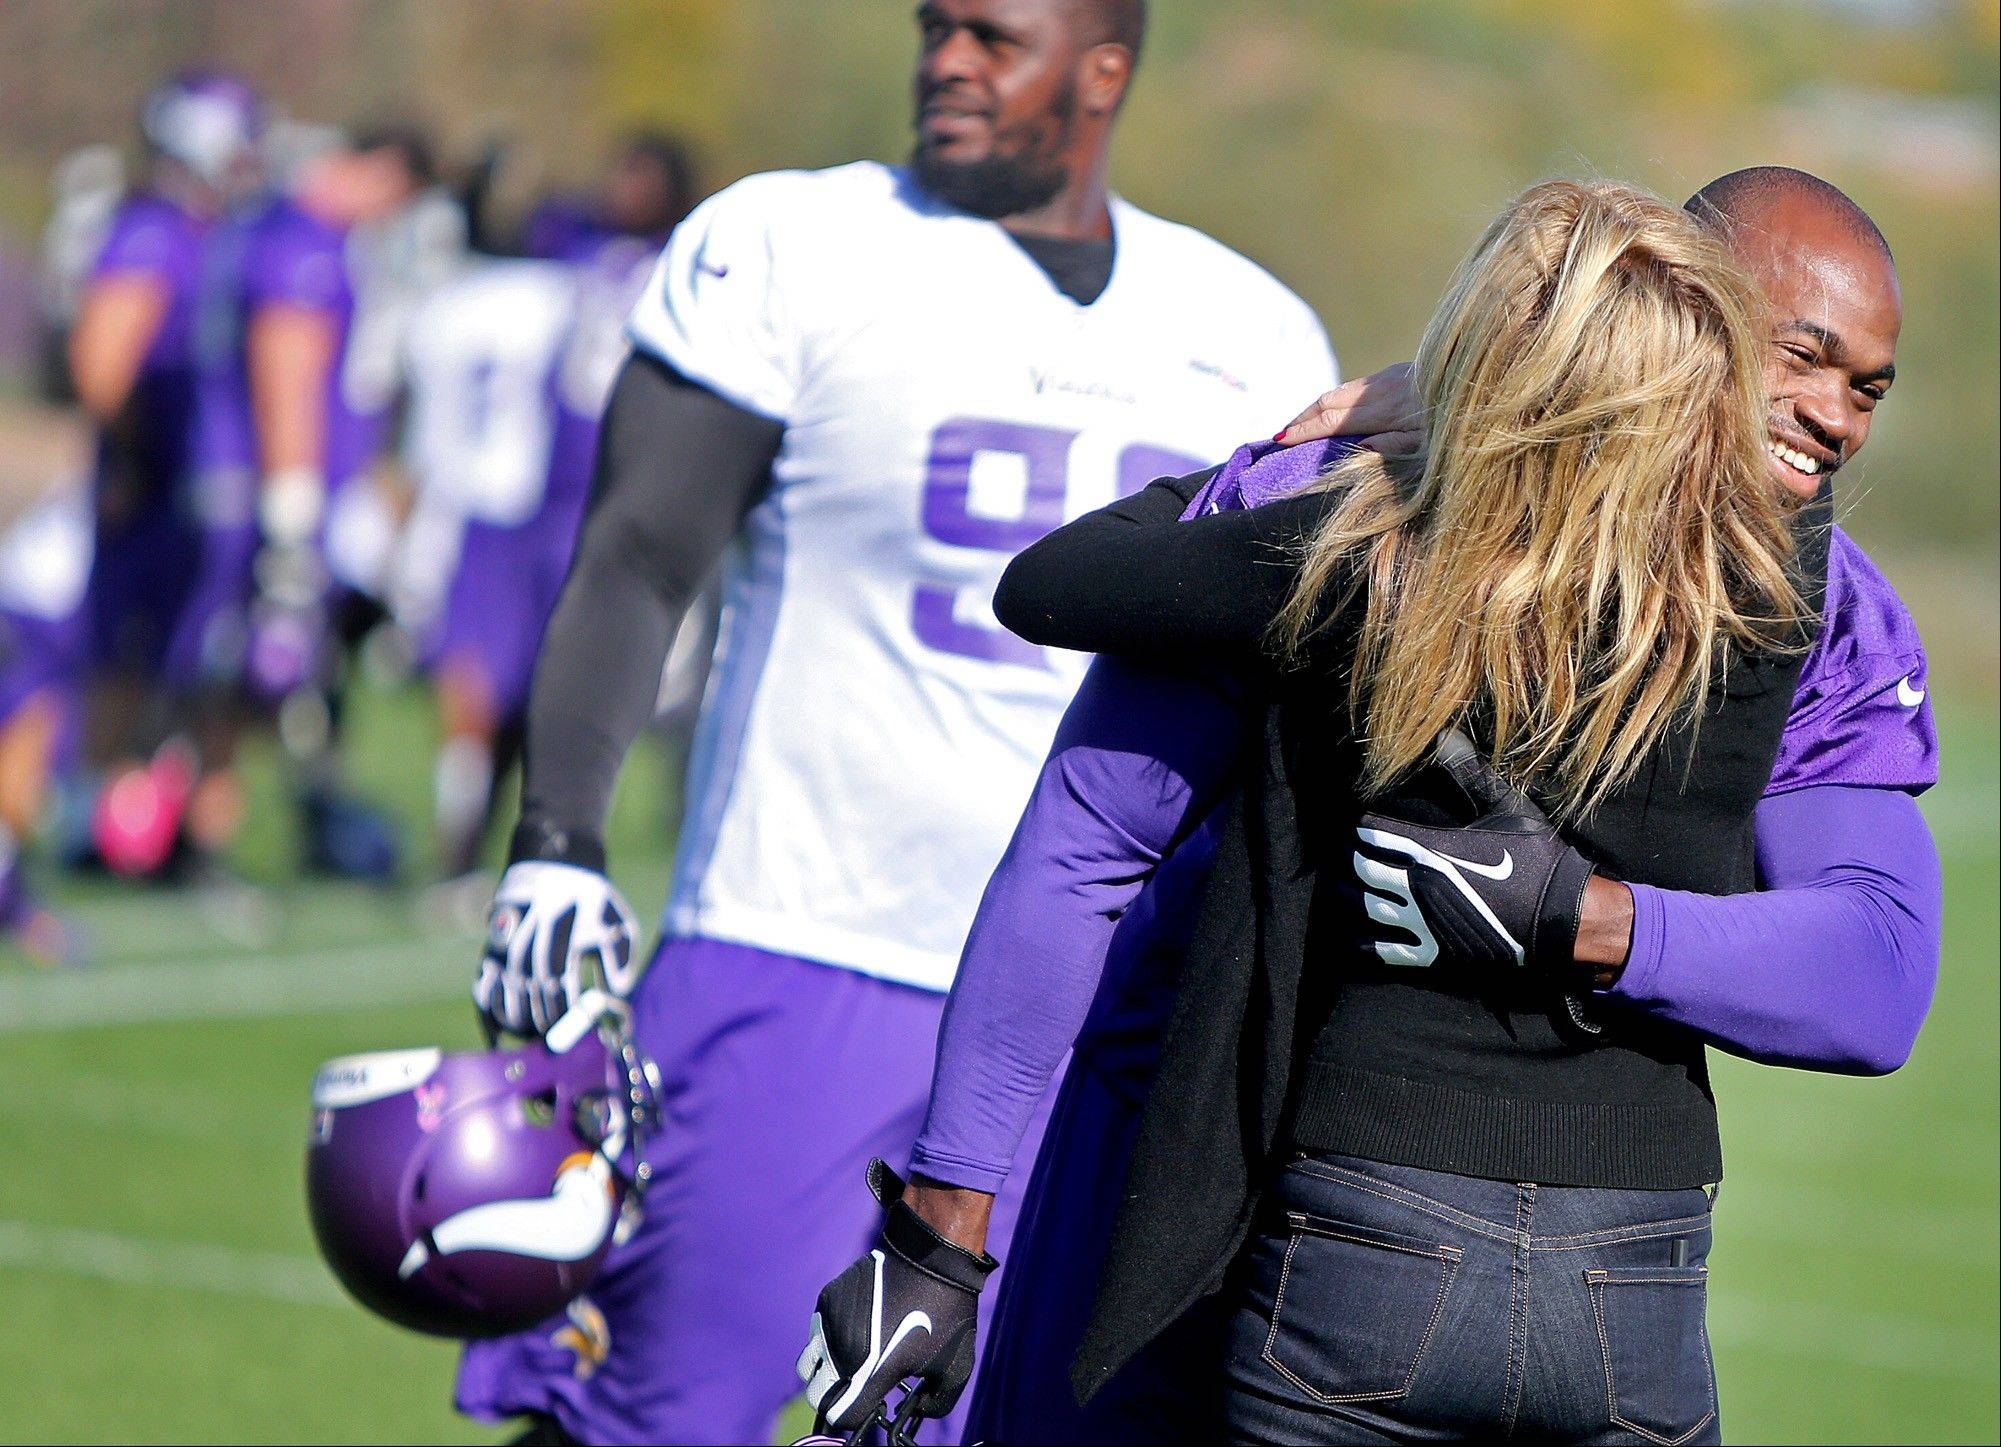 Minnesota Vikings' Adrian Peterson, right, receives a hug from an unidentified person during an NFL football practice field at Winter Park in Eden Prairie, Minn., Friday, Oct. 11, 2013. Peterson said he is certain he will play Sunday despite a serious personal matter that caused him to miss practice earlier this week. (AP Photo/The Star Tribune, Elizabeth Flores) ST. PAUL PIONEER PRESS OUT; SOFT OUT MINNEAPOLIS-AREA TV NOT TV OUT; MAGAZINES OUT